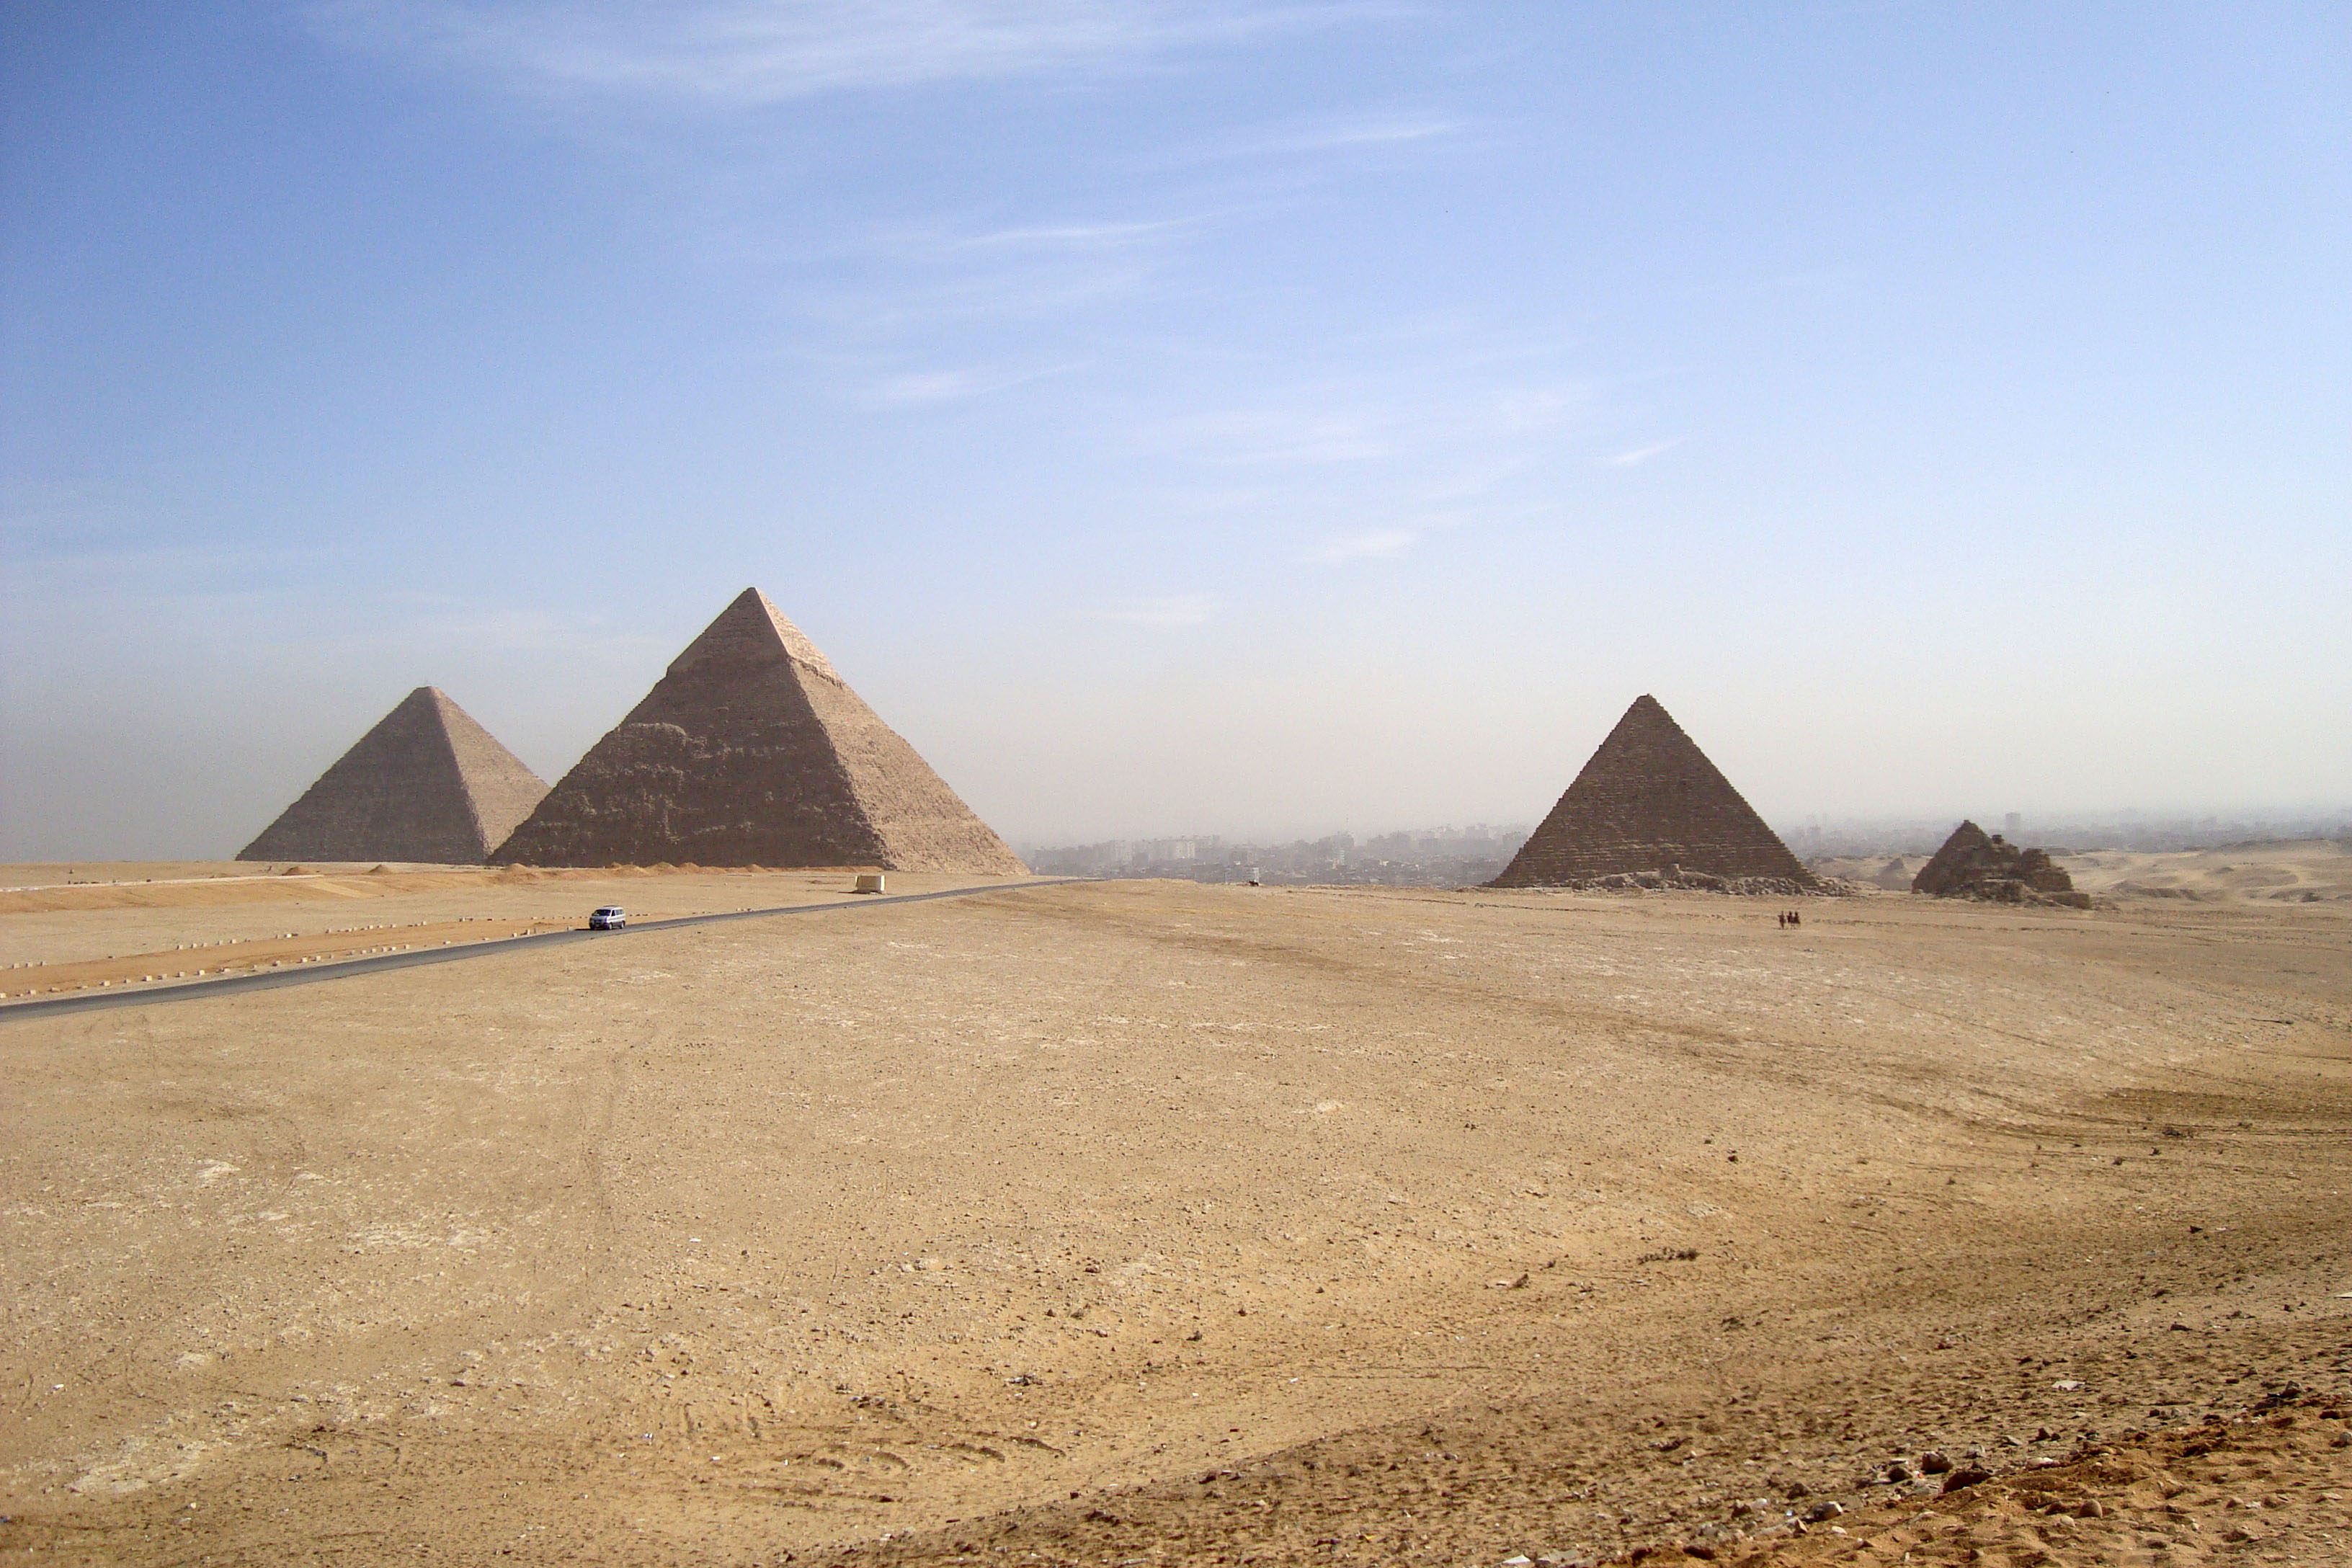 Egypt Pyramids Hd Wallpapers Desert Landscape And Pyramids At Giza Egypt Image Free